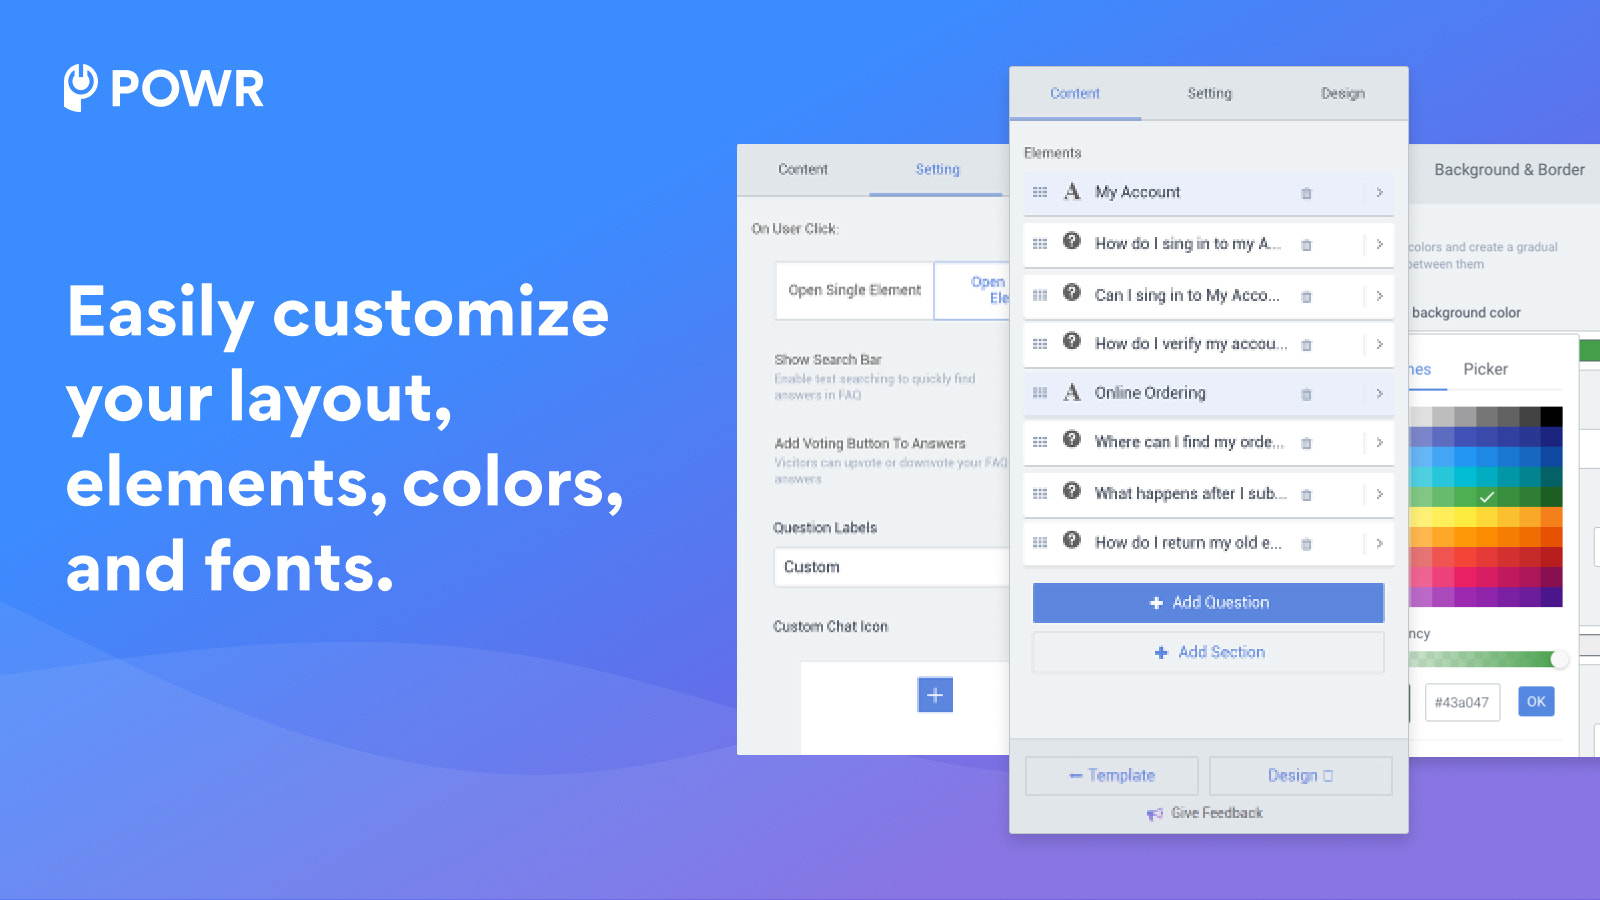 Easily customize your layout, elements, colors, and fonts.